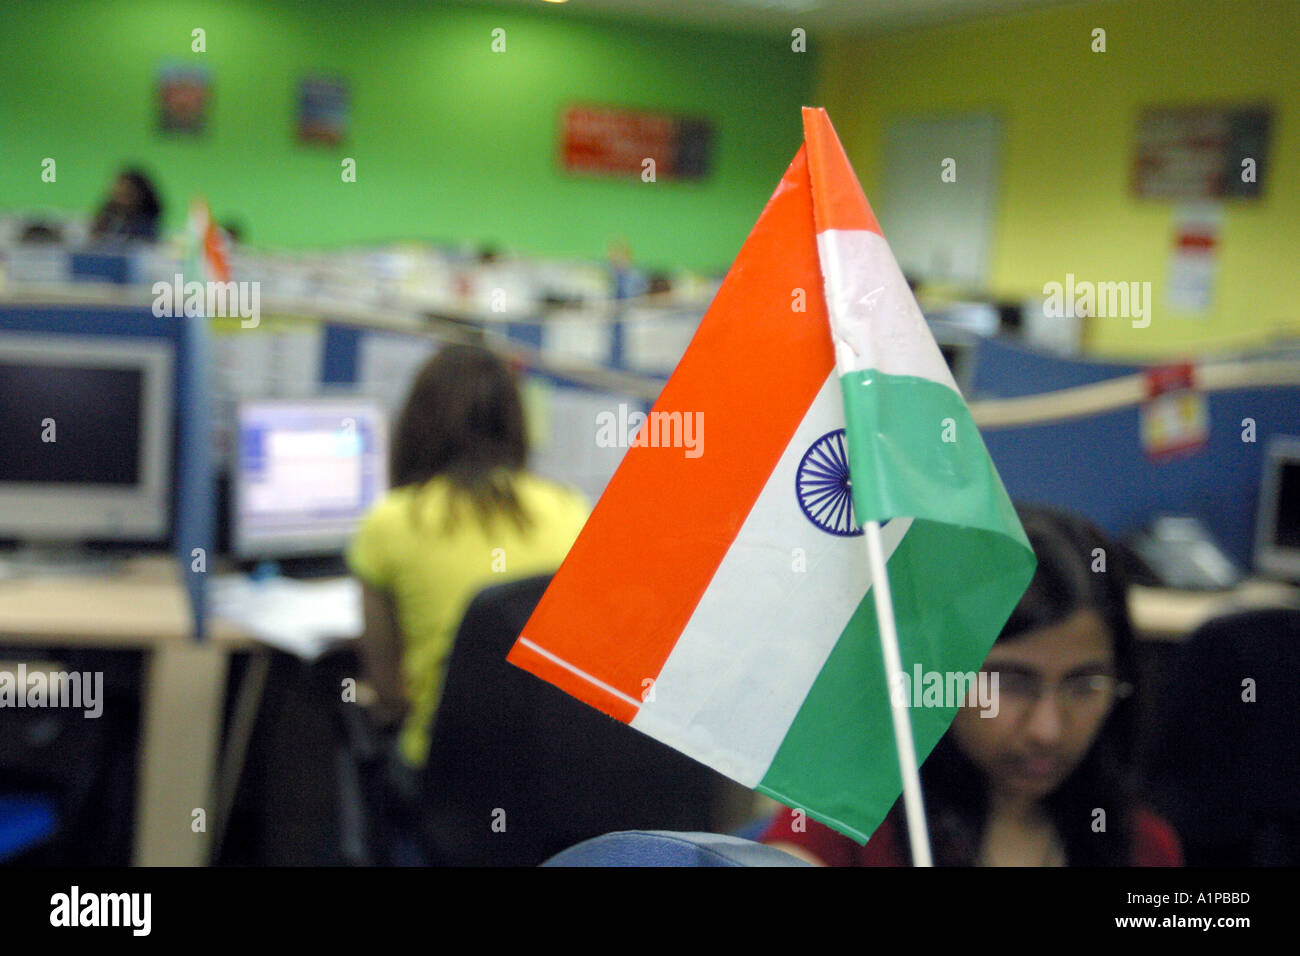 Indians work at a call center where business is outsourced from western companies in New Delhi in India. - Stock Image